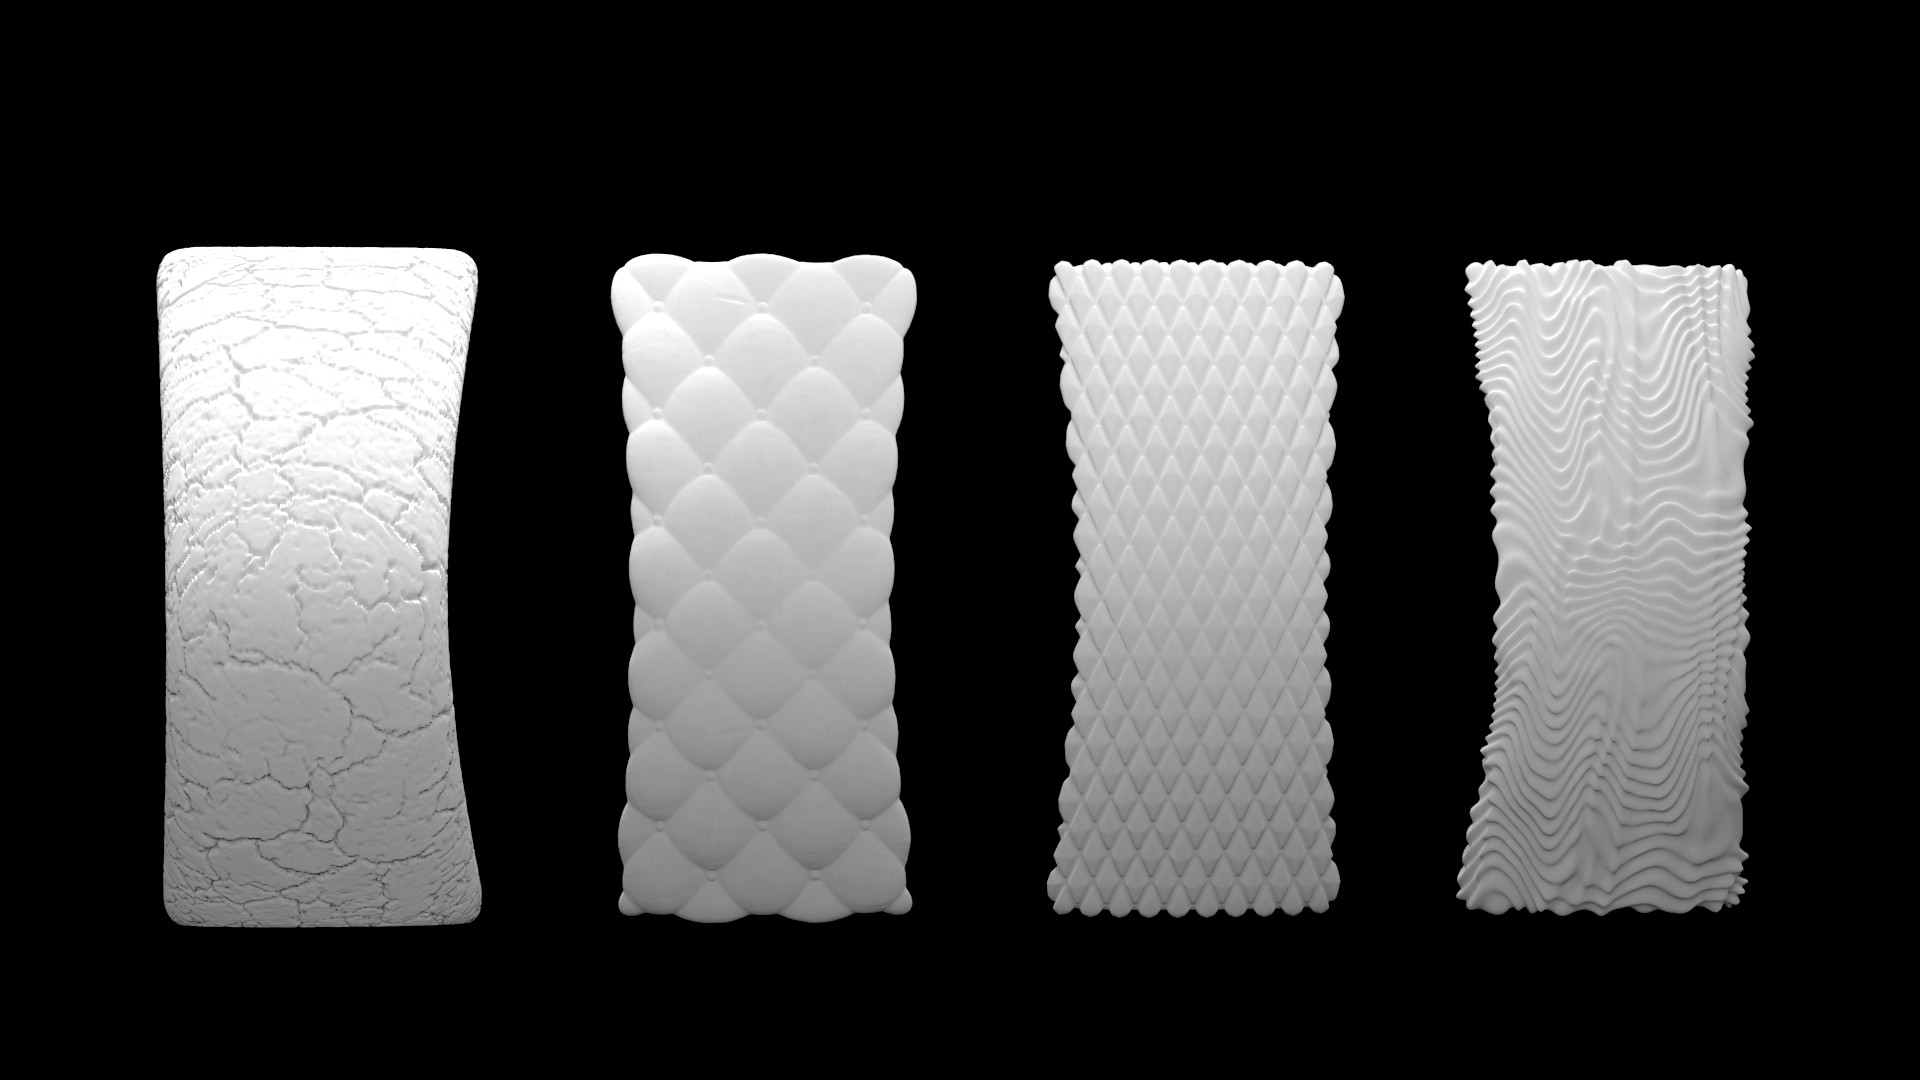 Creating 3D Textures for 3D Printing – RomanReiner